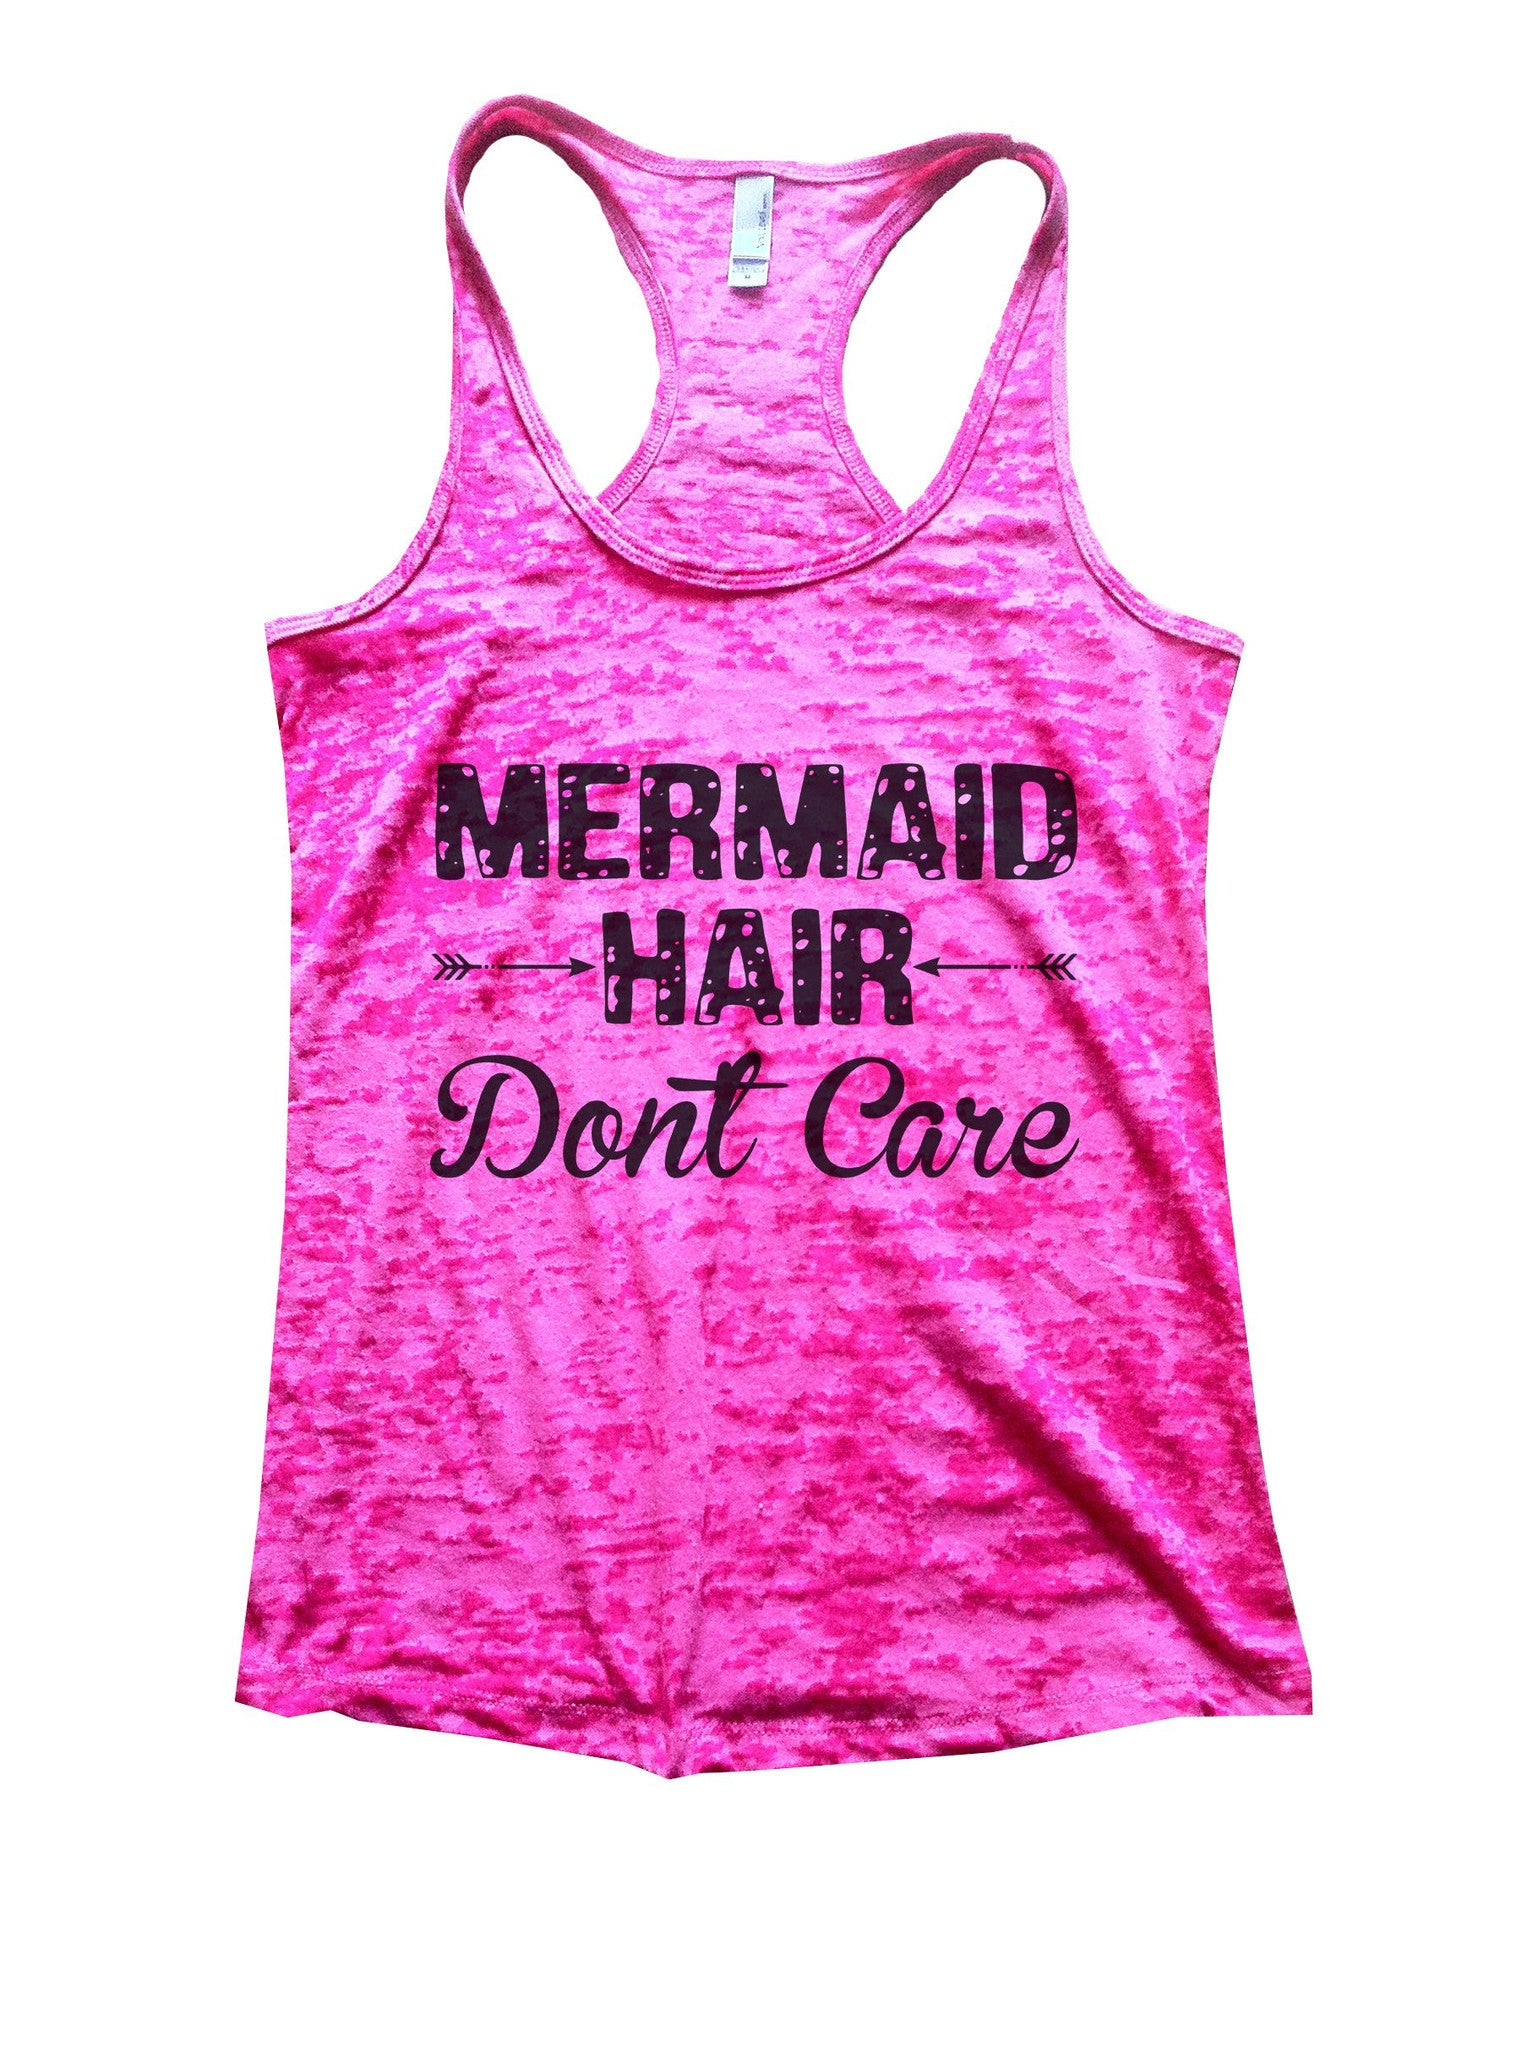 Mermaid Hair Dont Care Burnout Tank Top By BurnoutTankTops.com - 833 - Funny Shirts Tank Tops Burnouts and Triblends  - 5